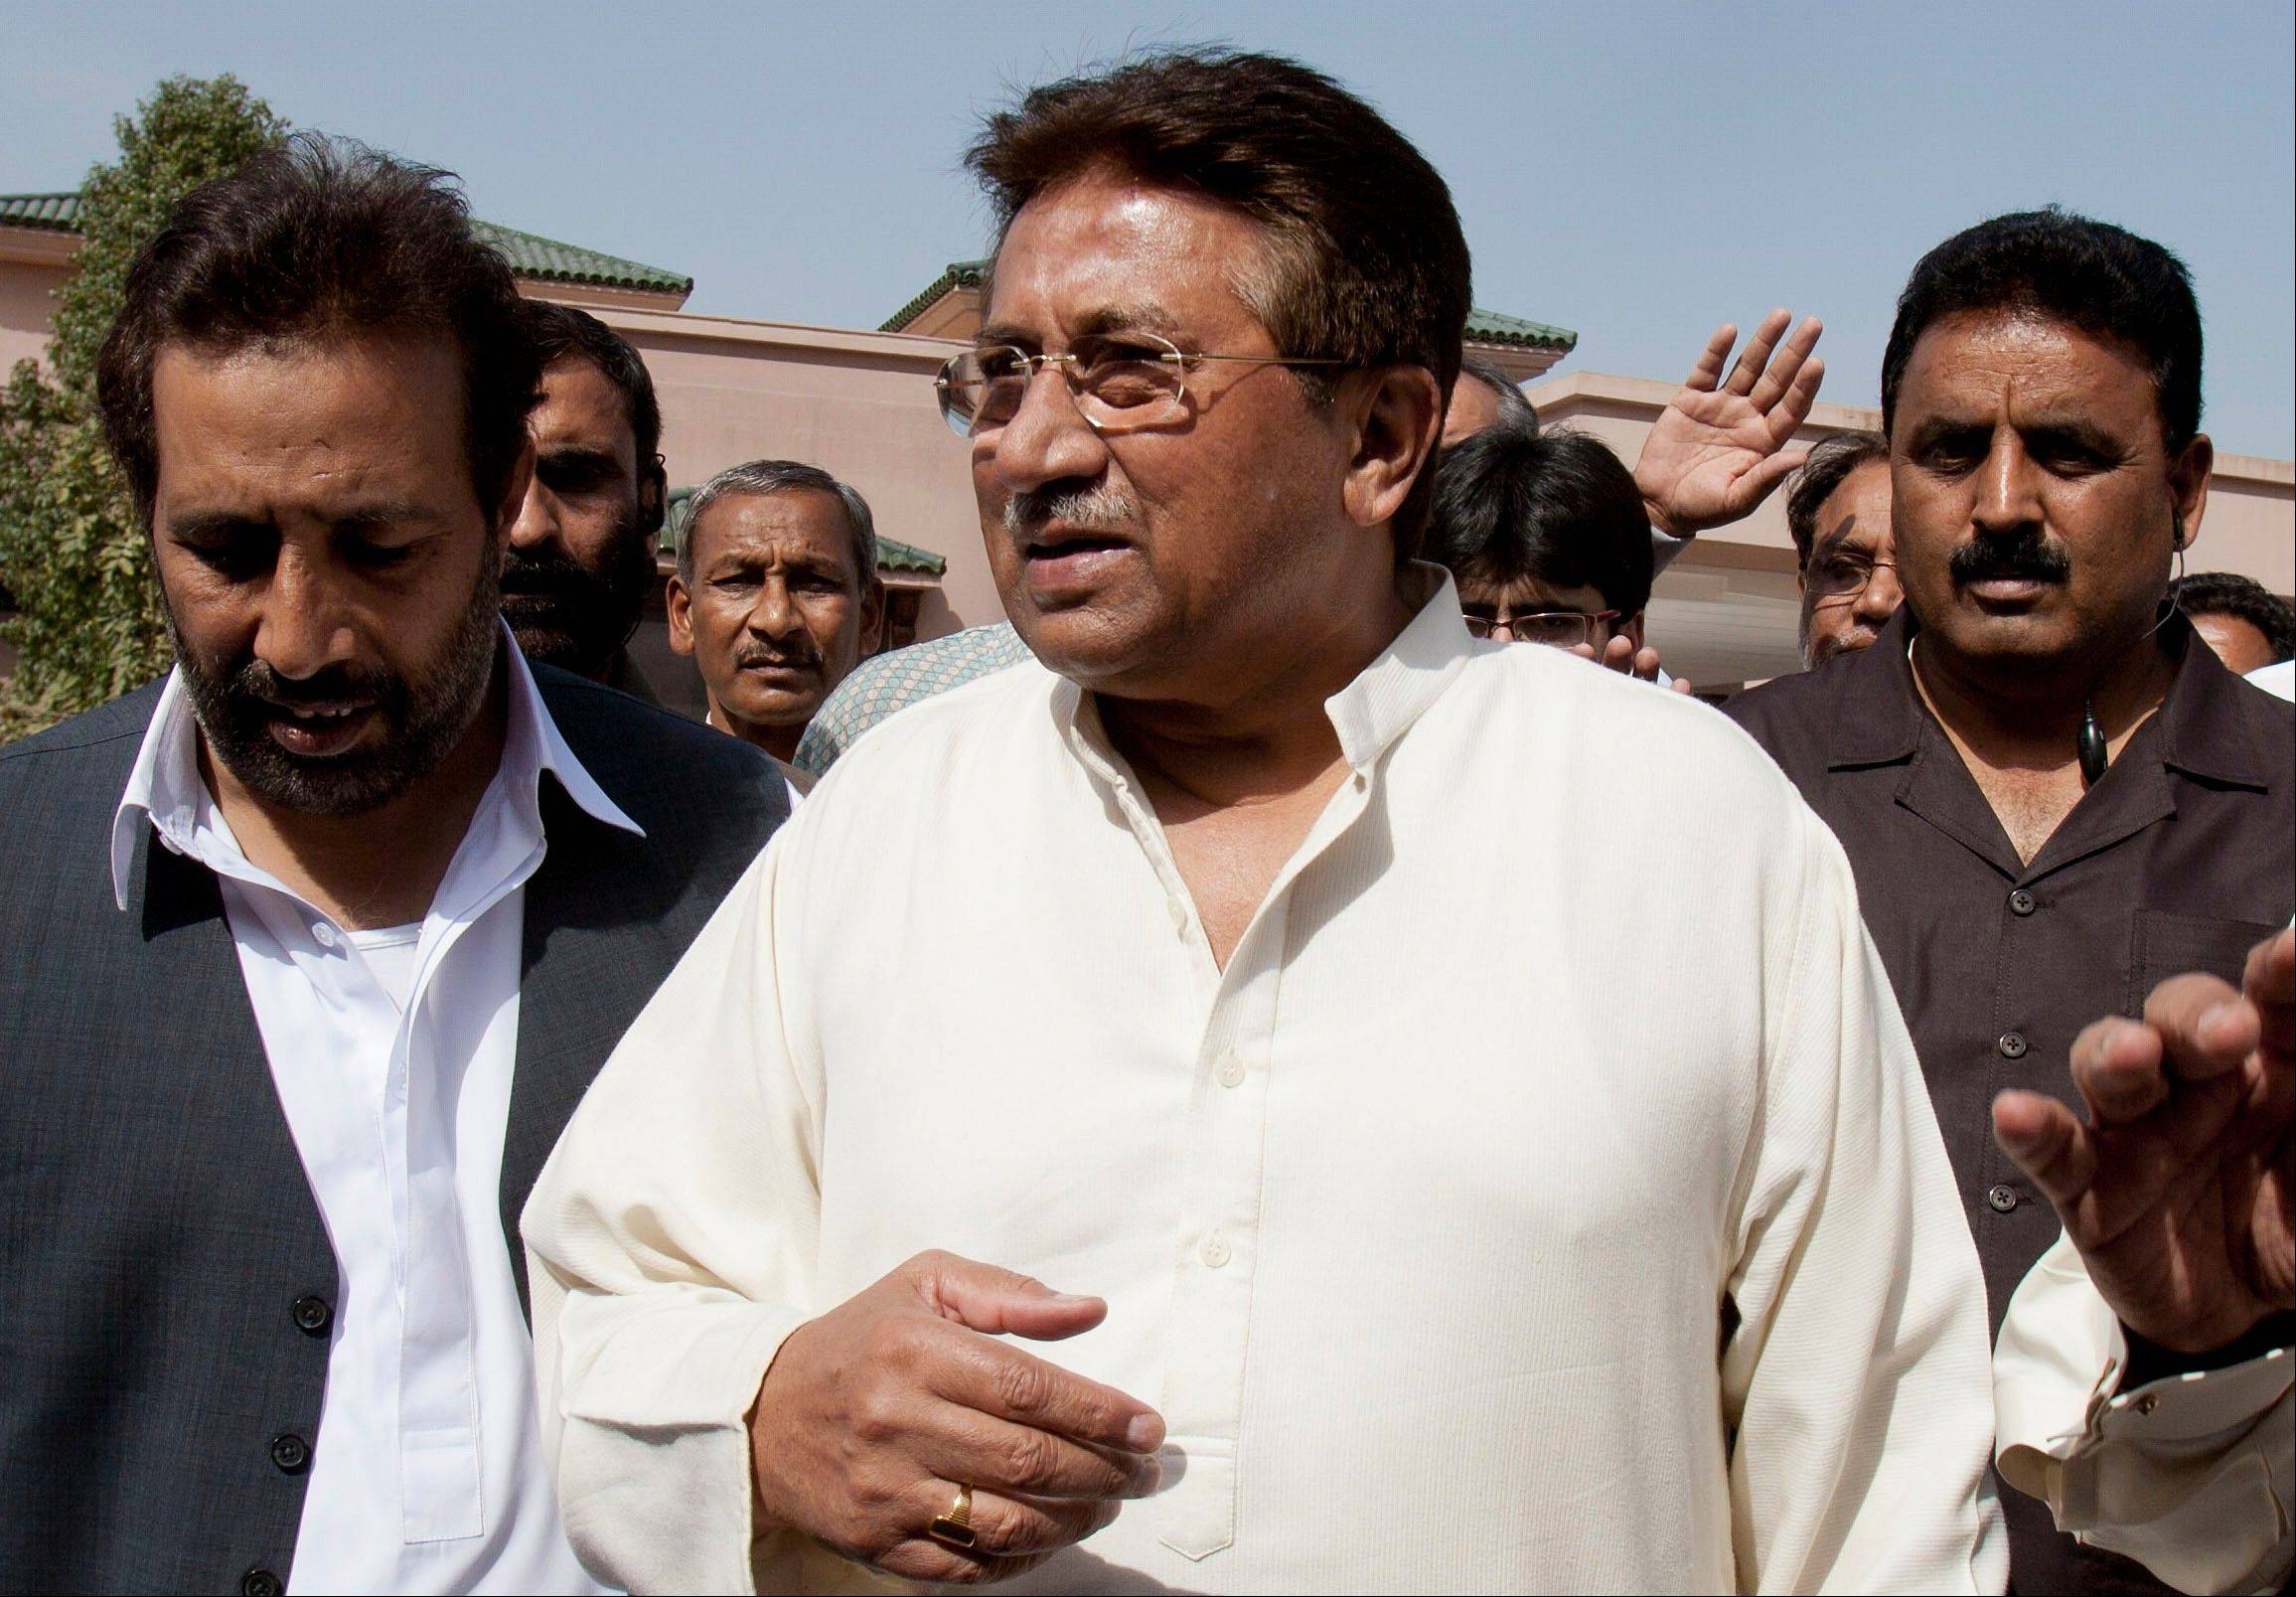 Pakistan�s former President and military ruler Pervez Musharraf and his security team pushed past policemen and sped away from a court in the country�s capital on Thursday after his bail was revoked in a case in which he is accused of treason.